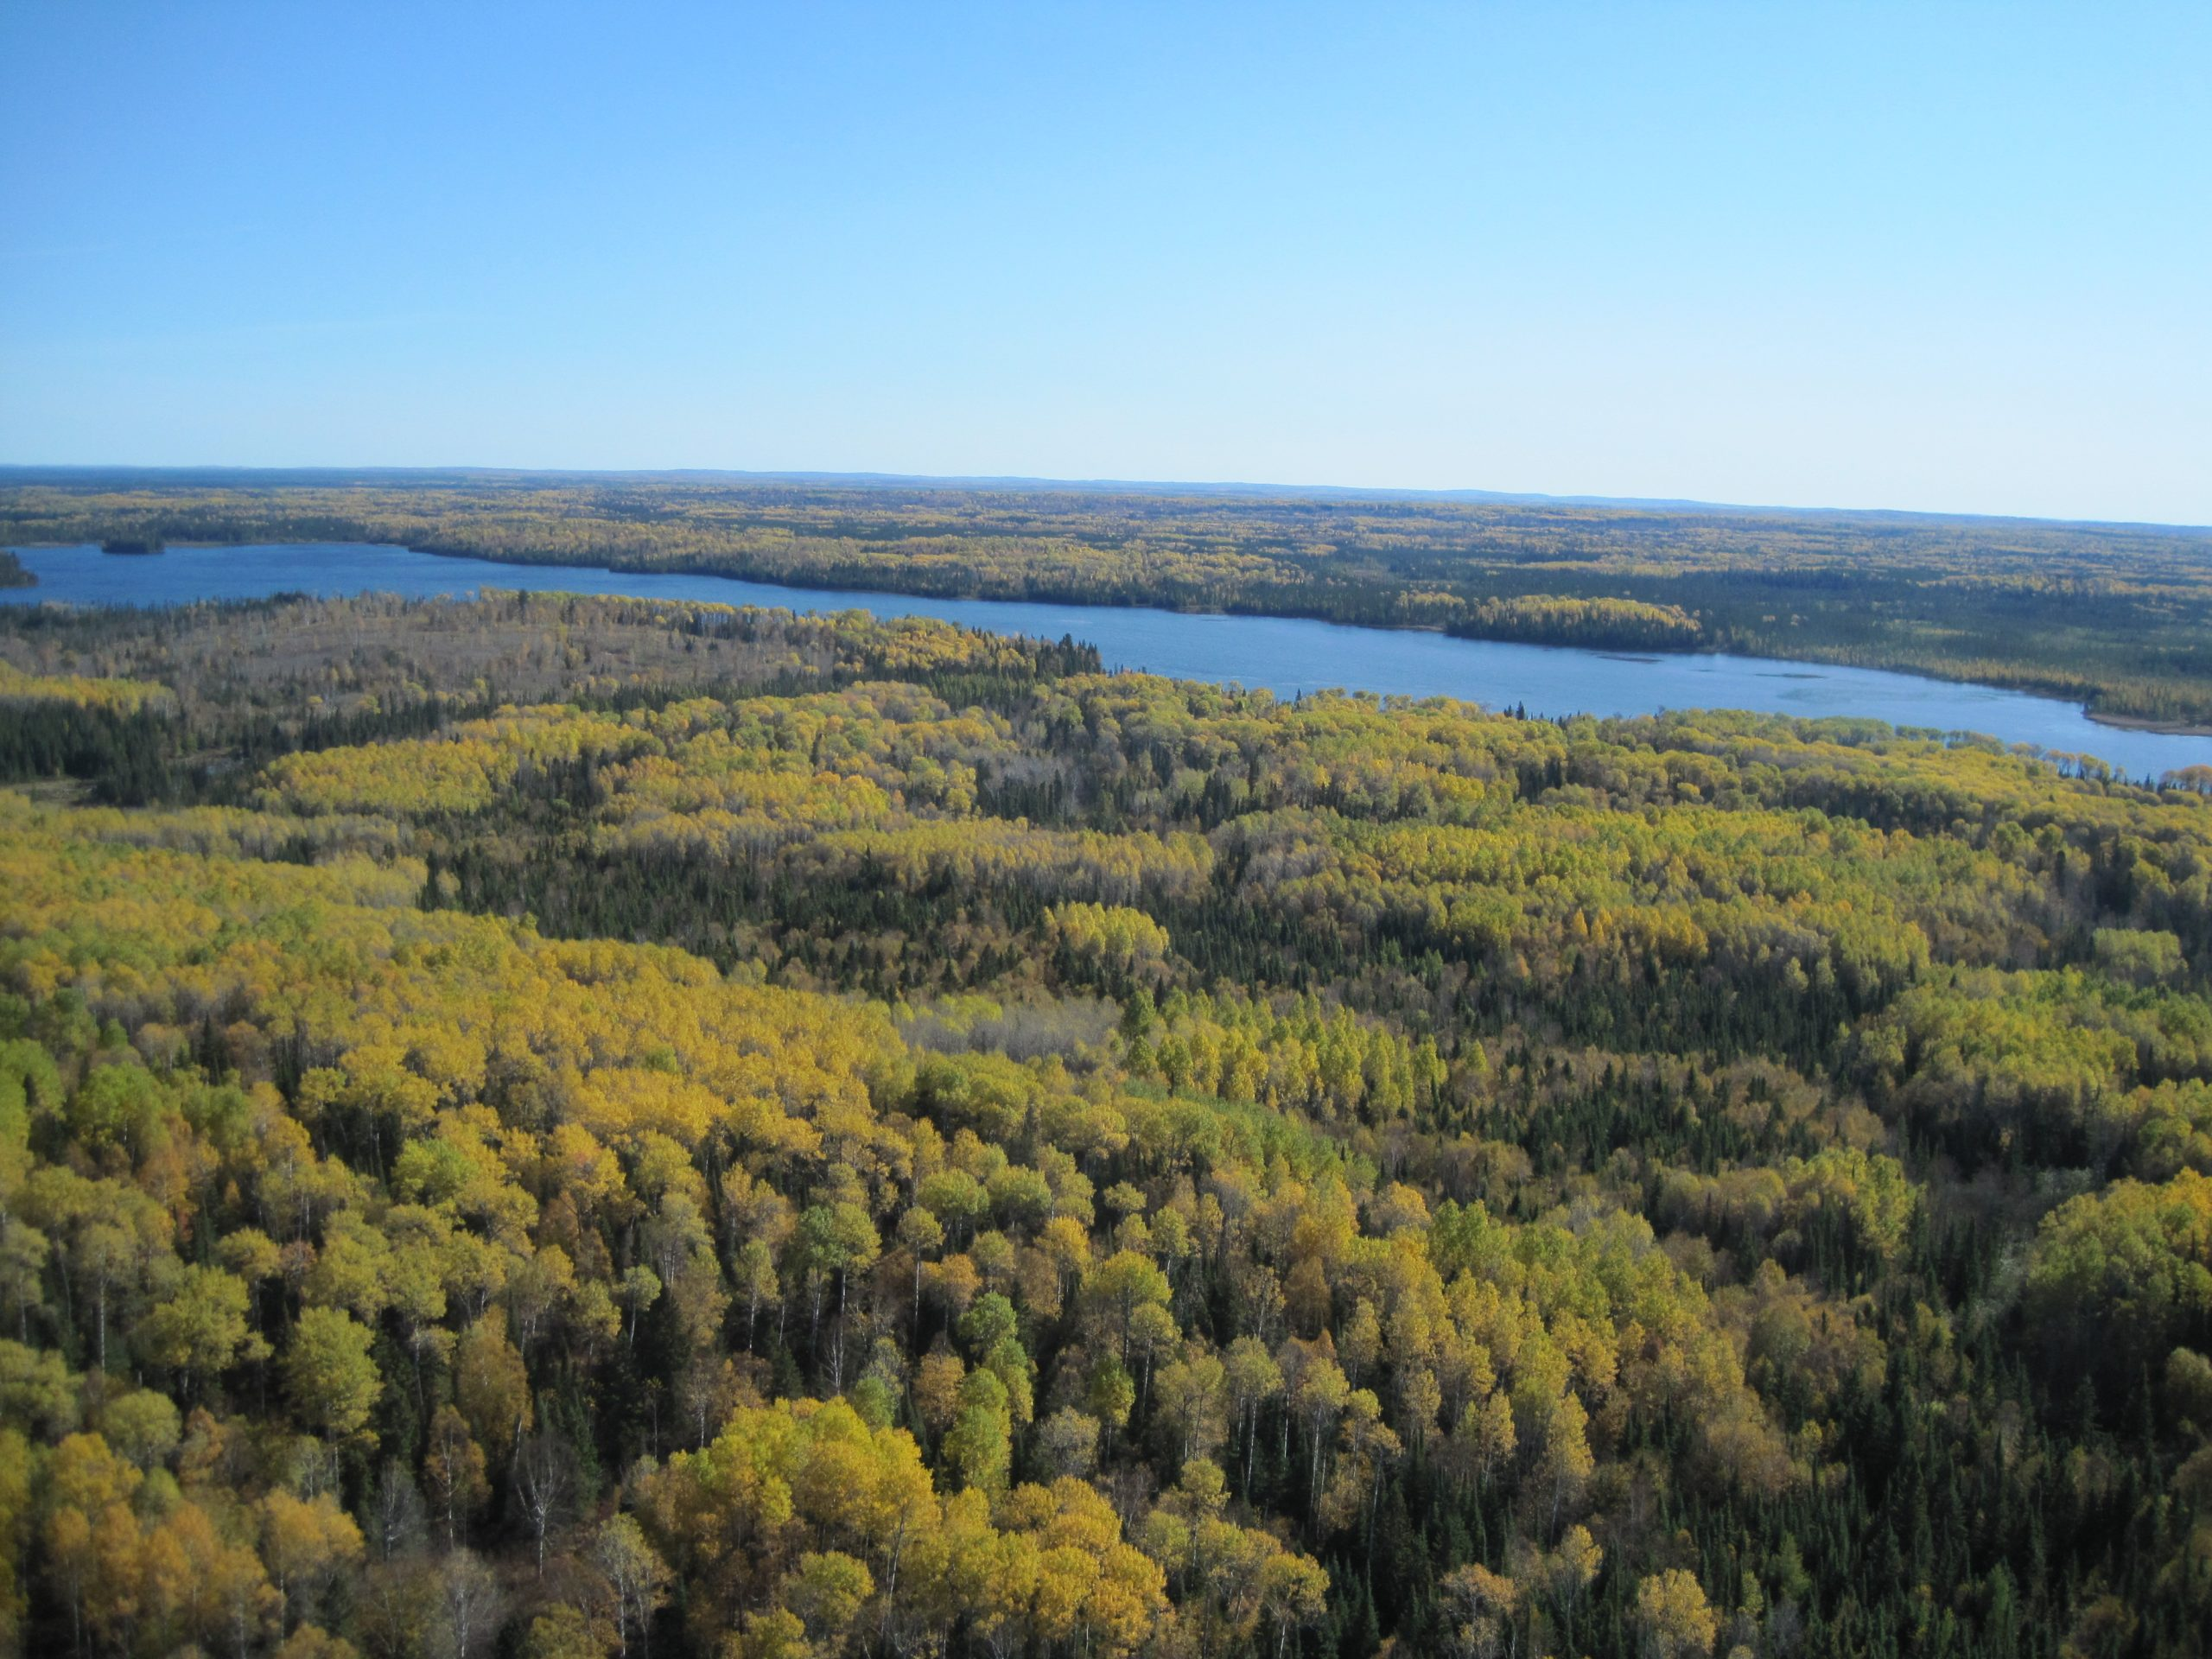 Managing forests that conserve wetlands and water quality